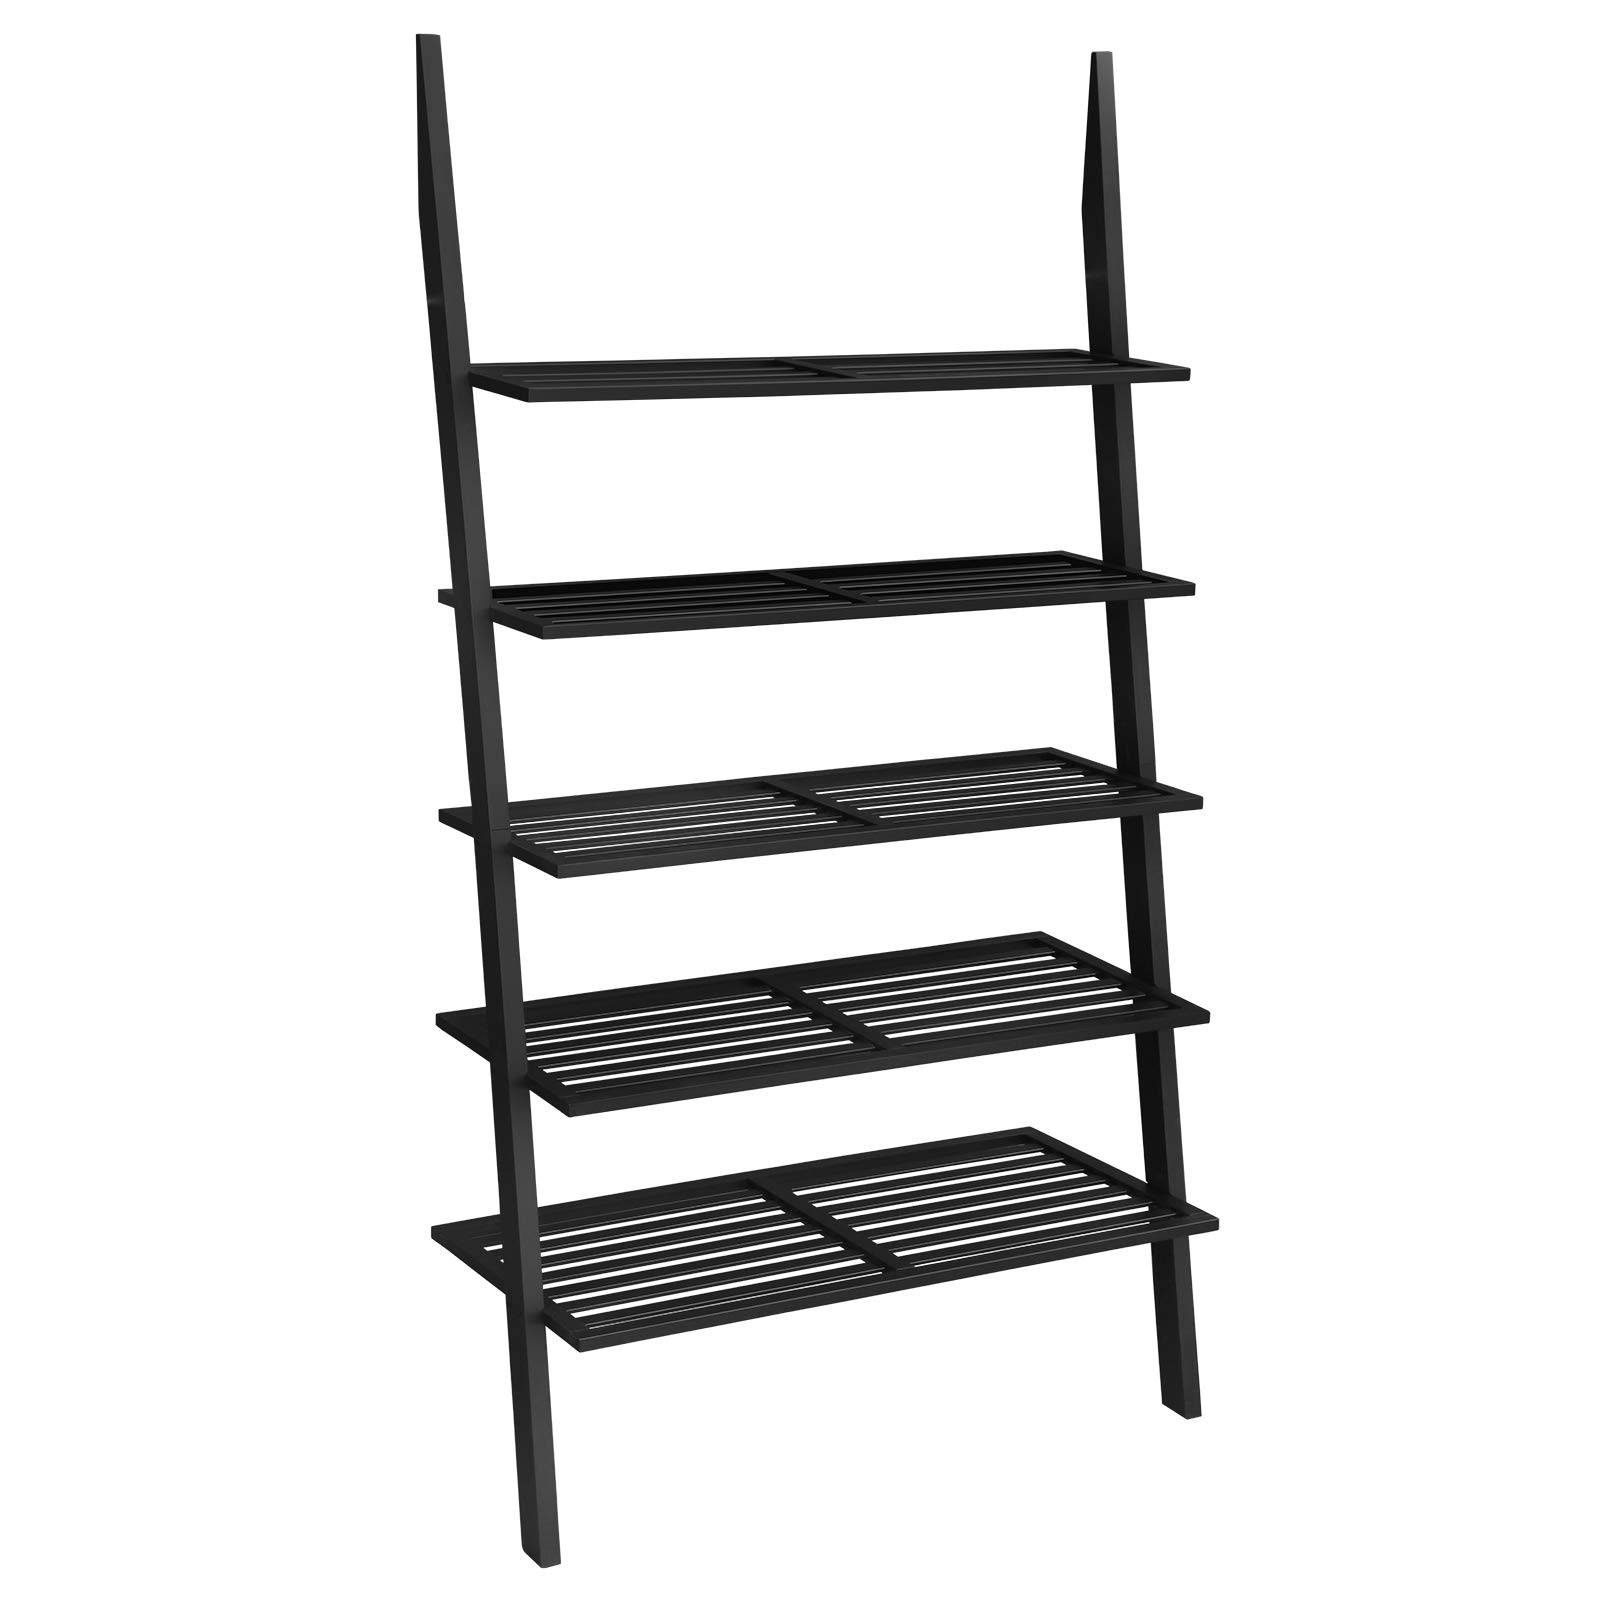 VASAGLE 5-Tier Ladder Shelf, Bamboo Bookshelf and Plant Stand, Spacious Storage for Living Room Bedroom Balcony, Black ULLS15BK by VASAGLE